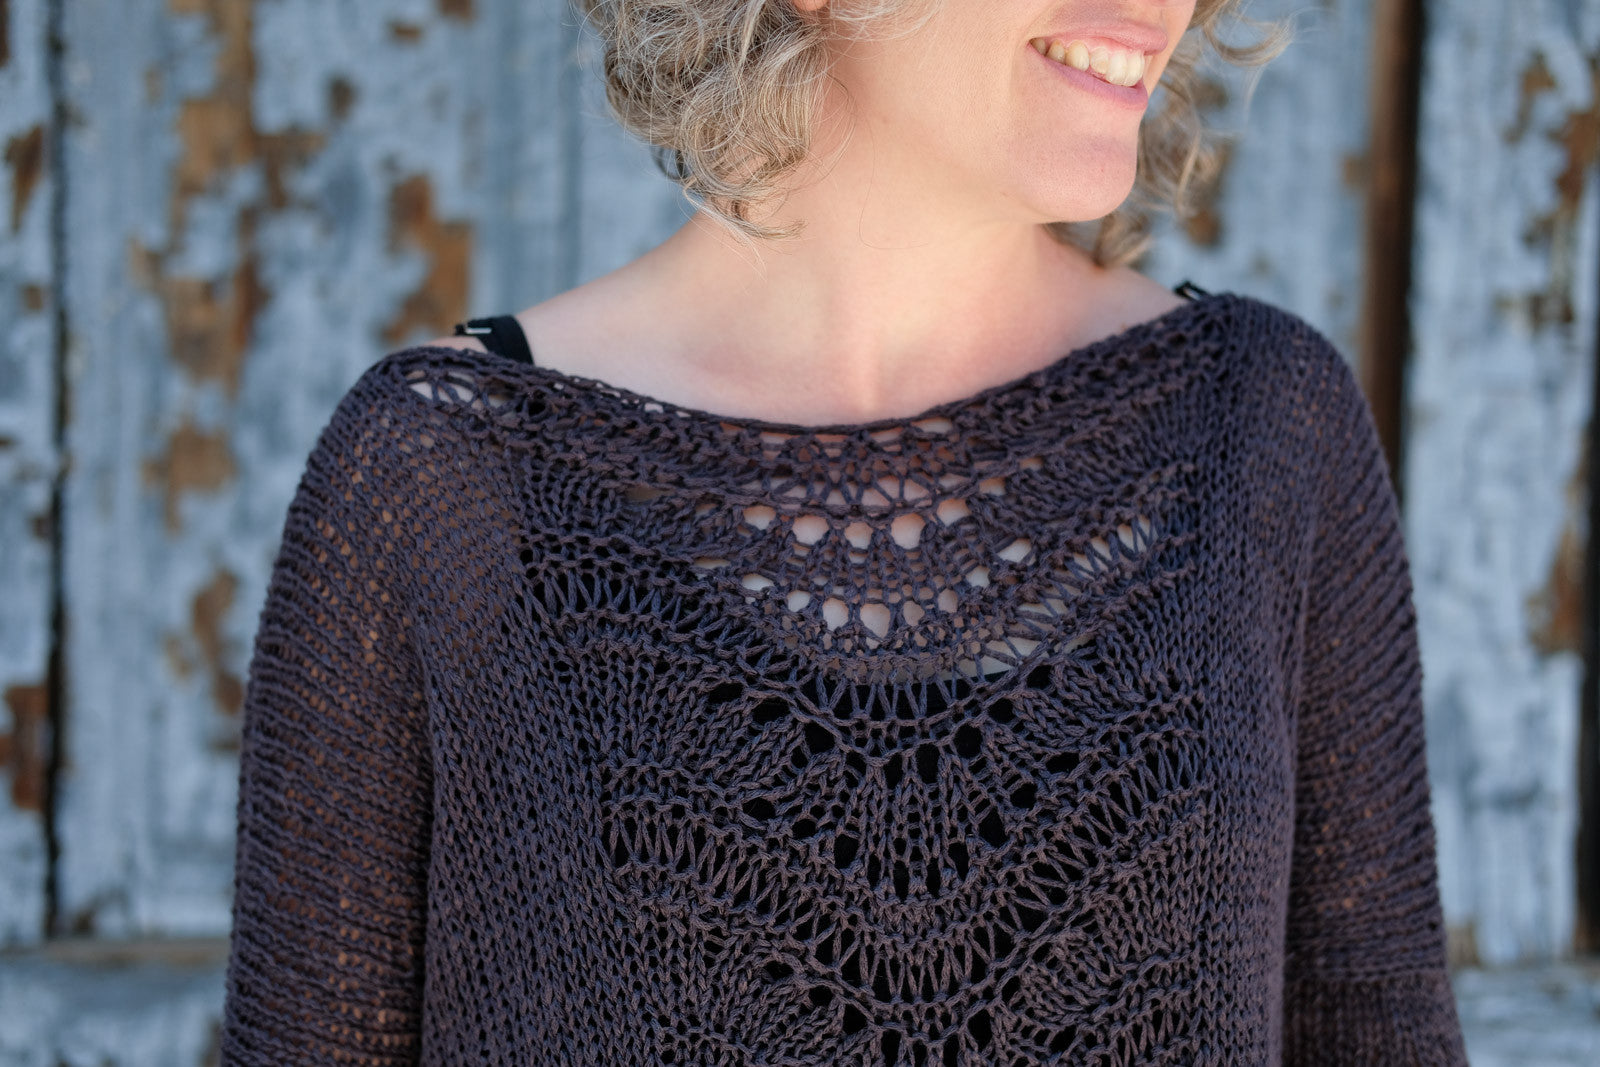 Neckline of the Deschain Sweater